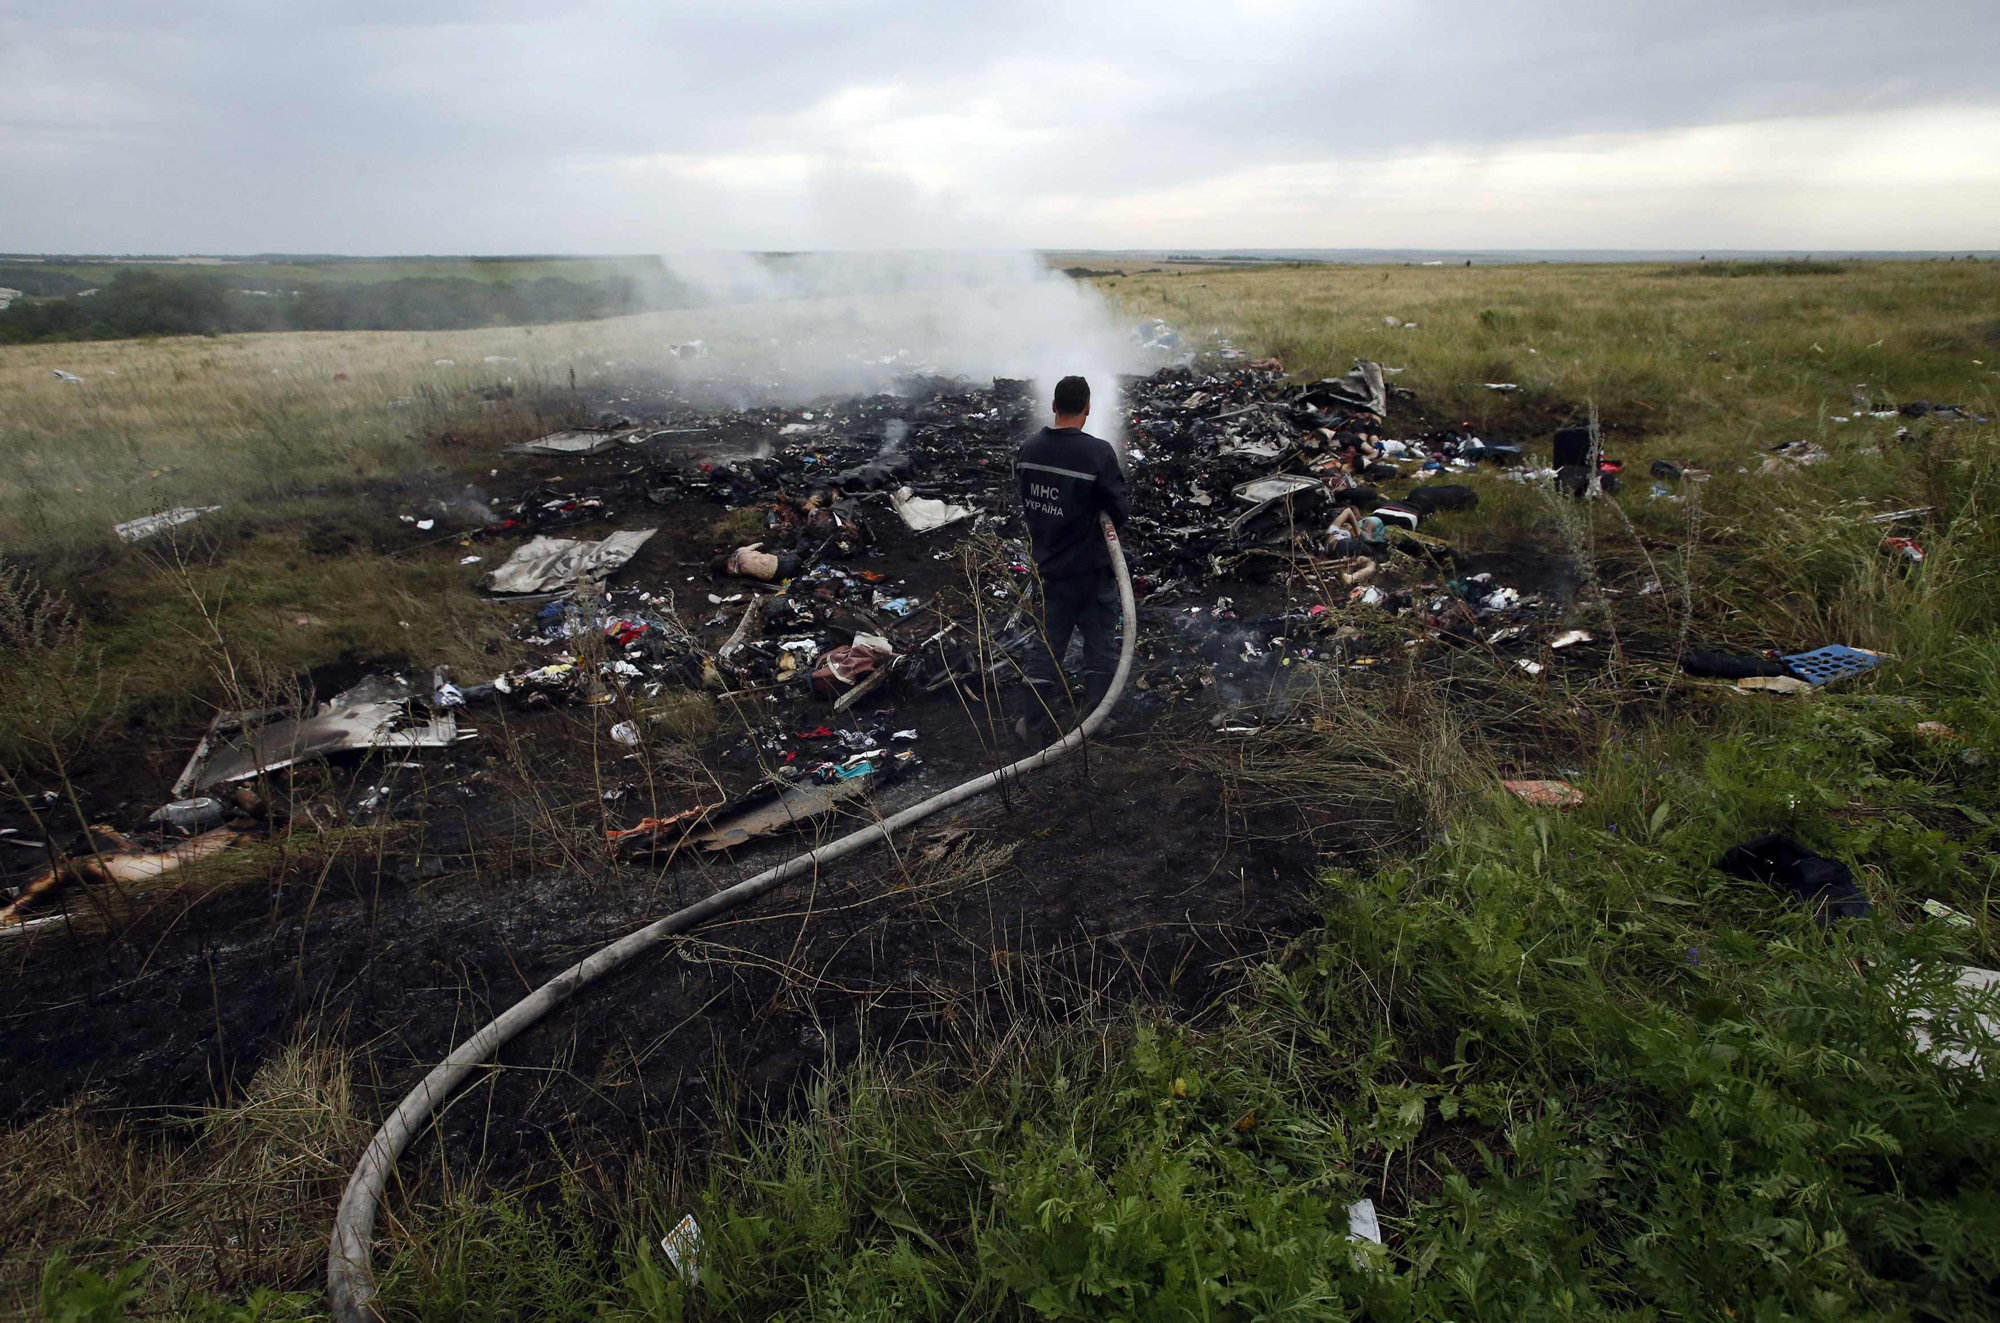 An Emergencies Ministry member works at putting out a fire at the site of a Malaysia Airlines Boeing 777 plane crash in the settlement of Grabovo in the Donetsk region, July 17, 2014.